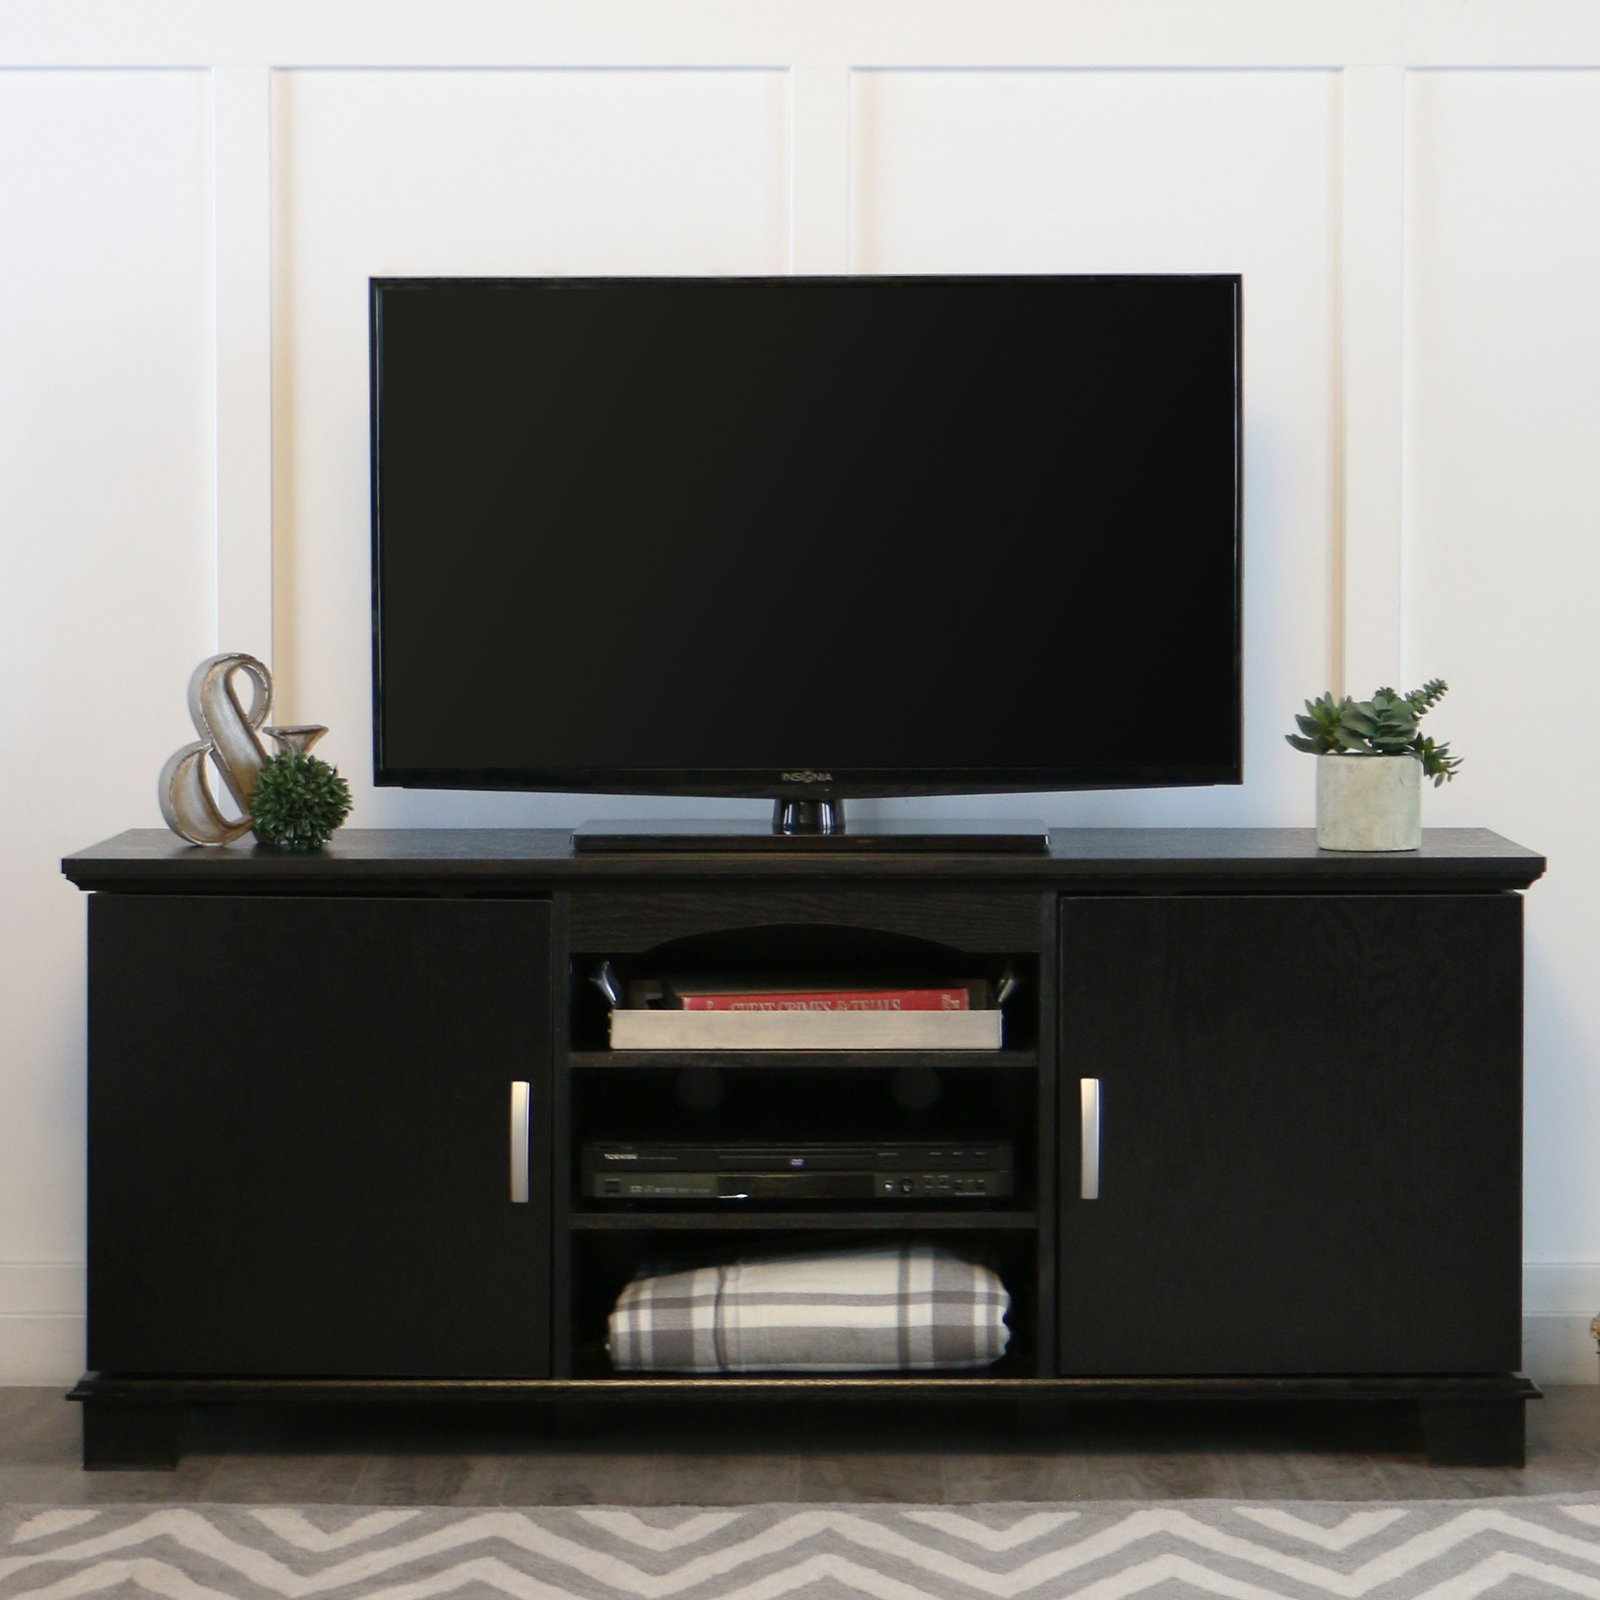 "Walker Edison Black Tv Stand For Tvs Up To 65"", Multiple Colors intended for Century Blue 60 Inch Tv Stands (Image 27 of 30)"